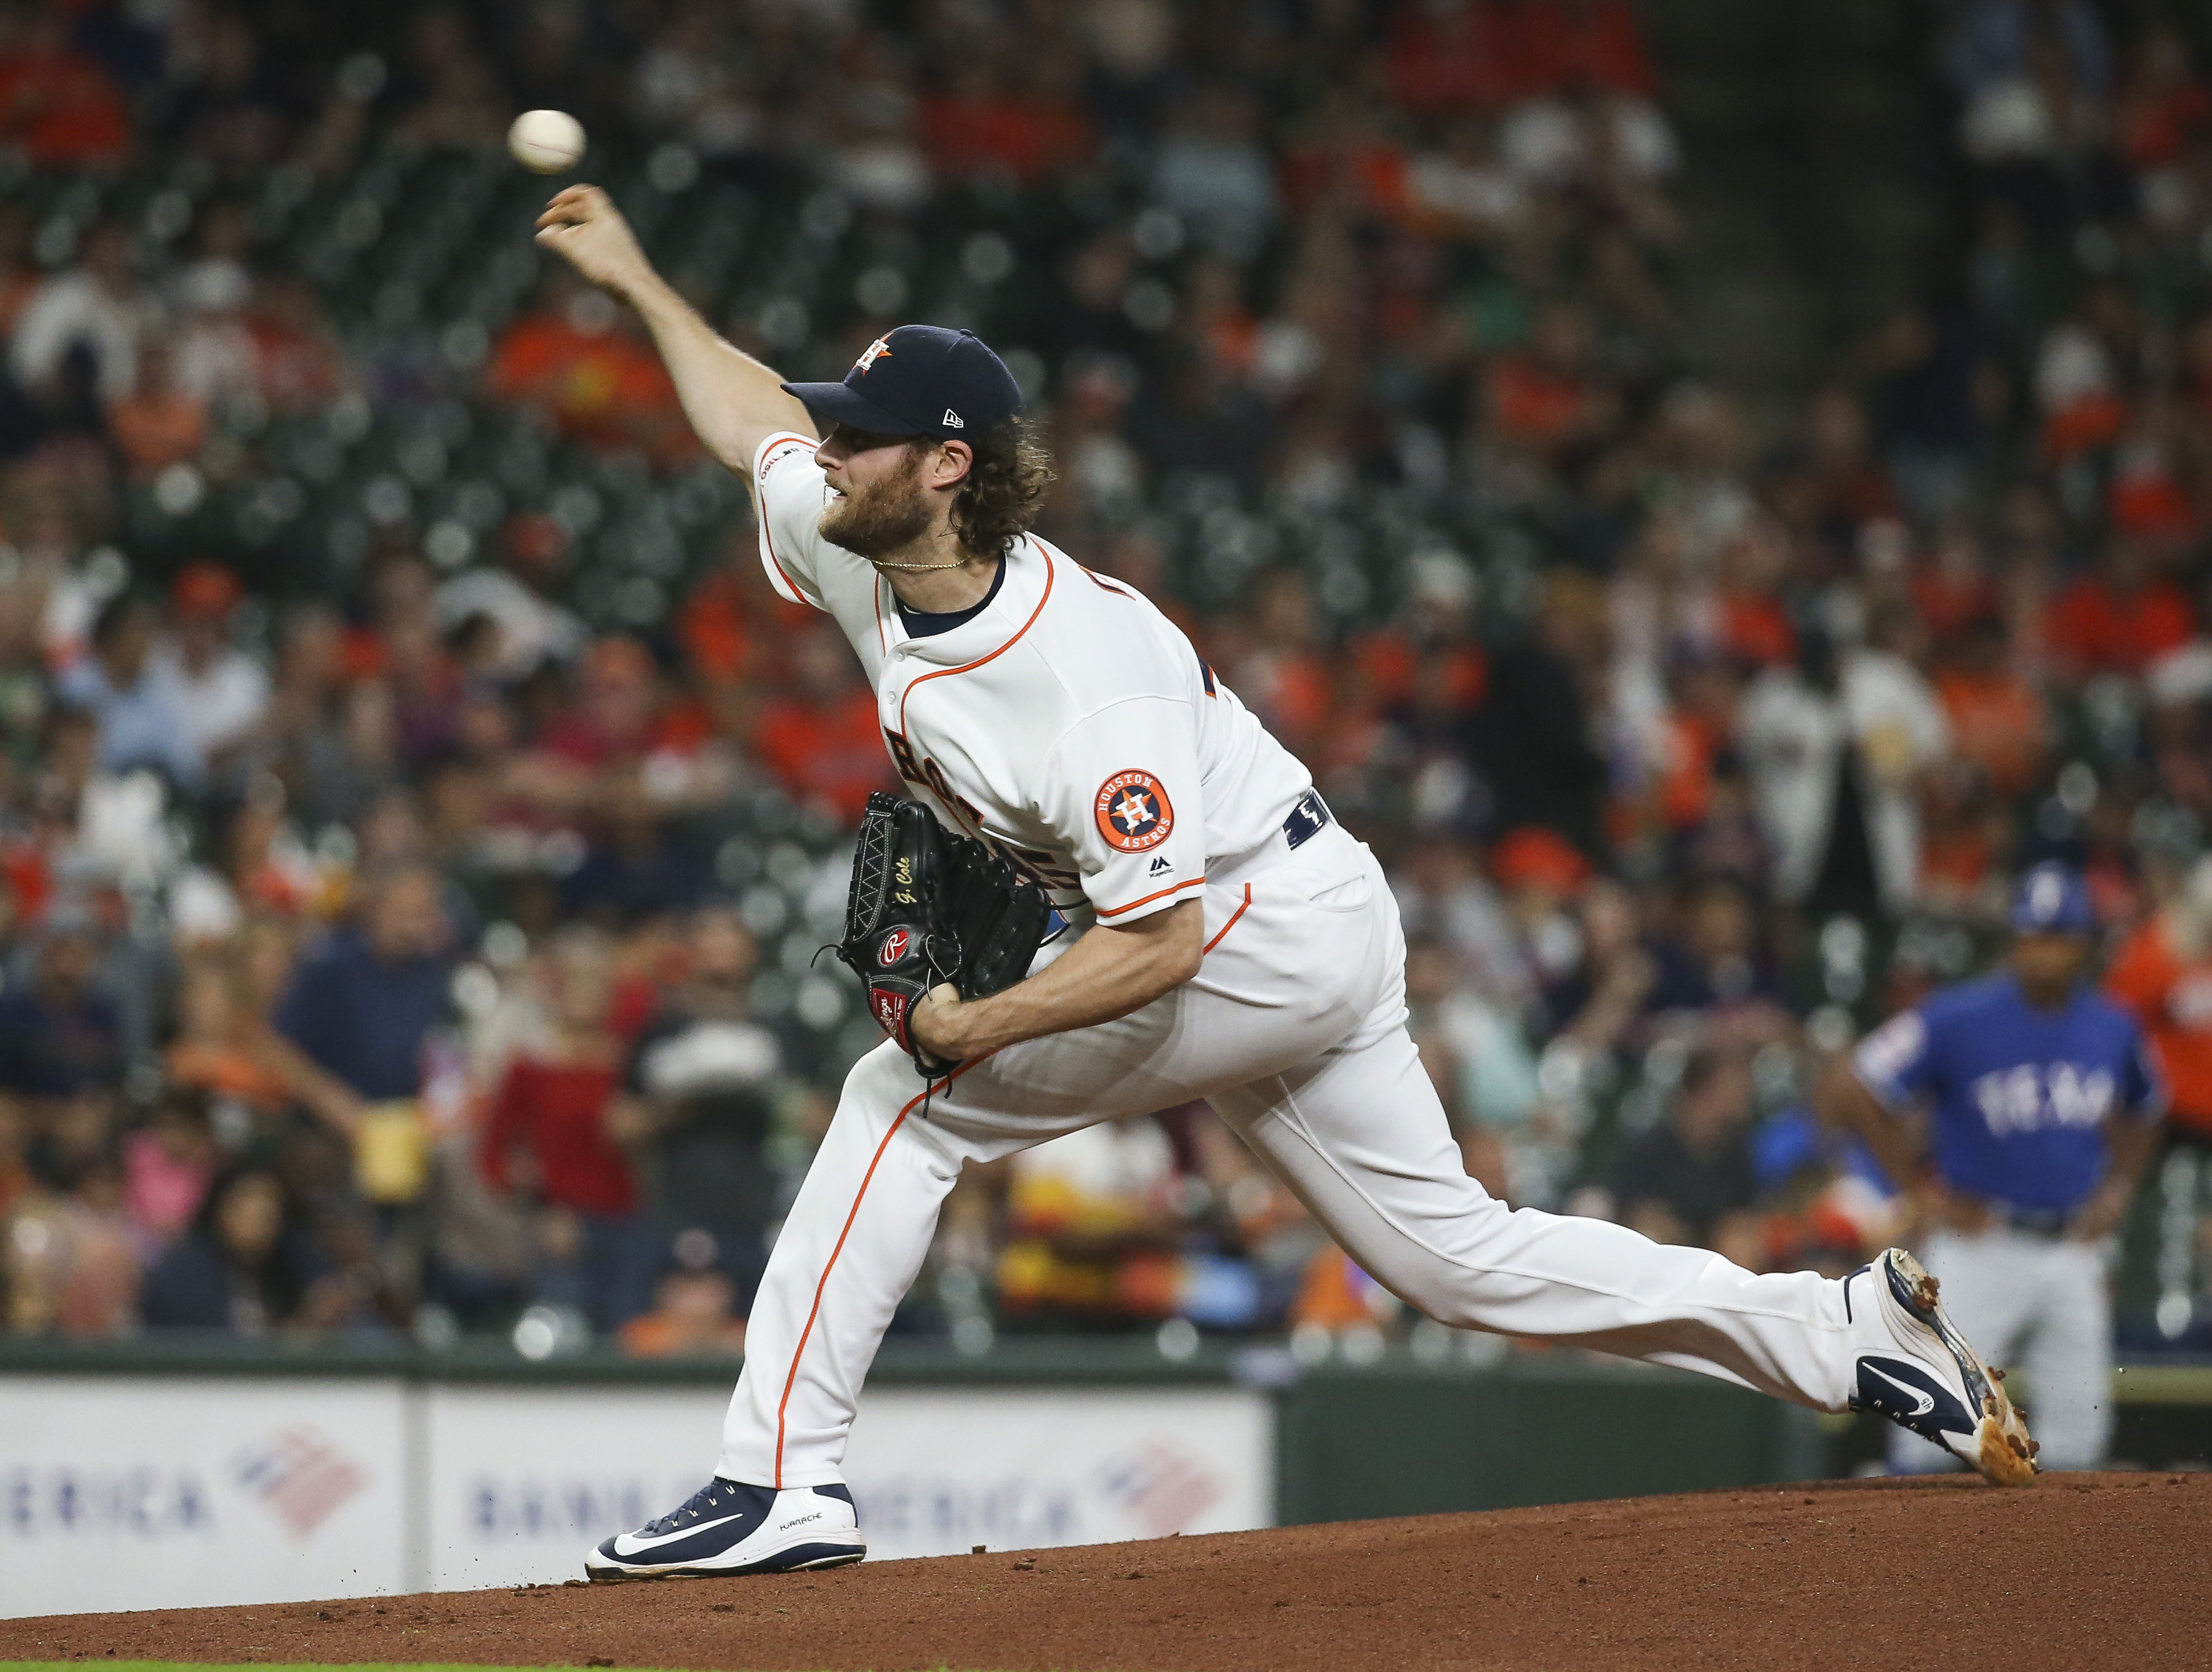 Gerrit Cole has been virtually unstoppable for the Astros